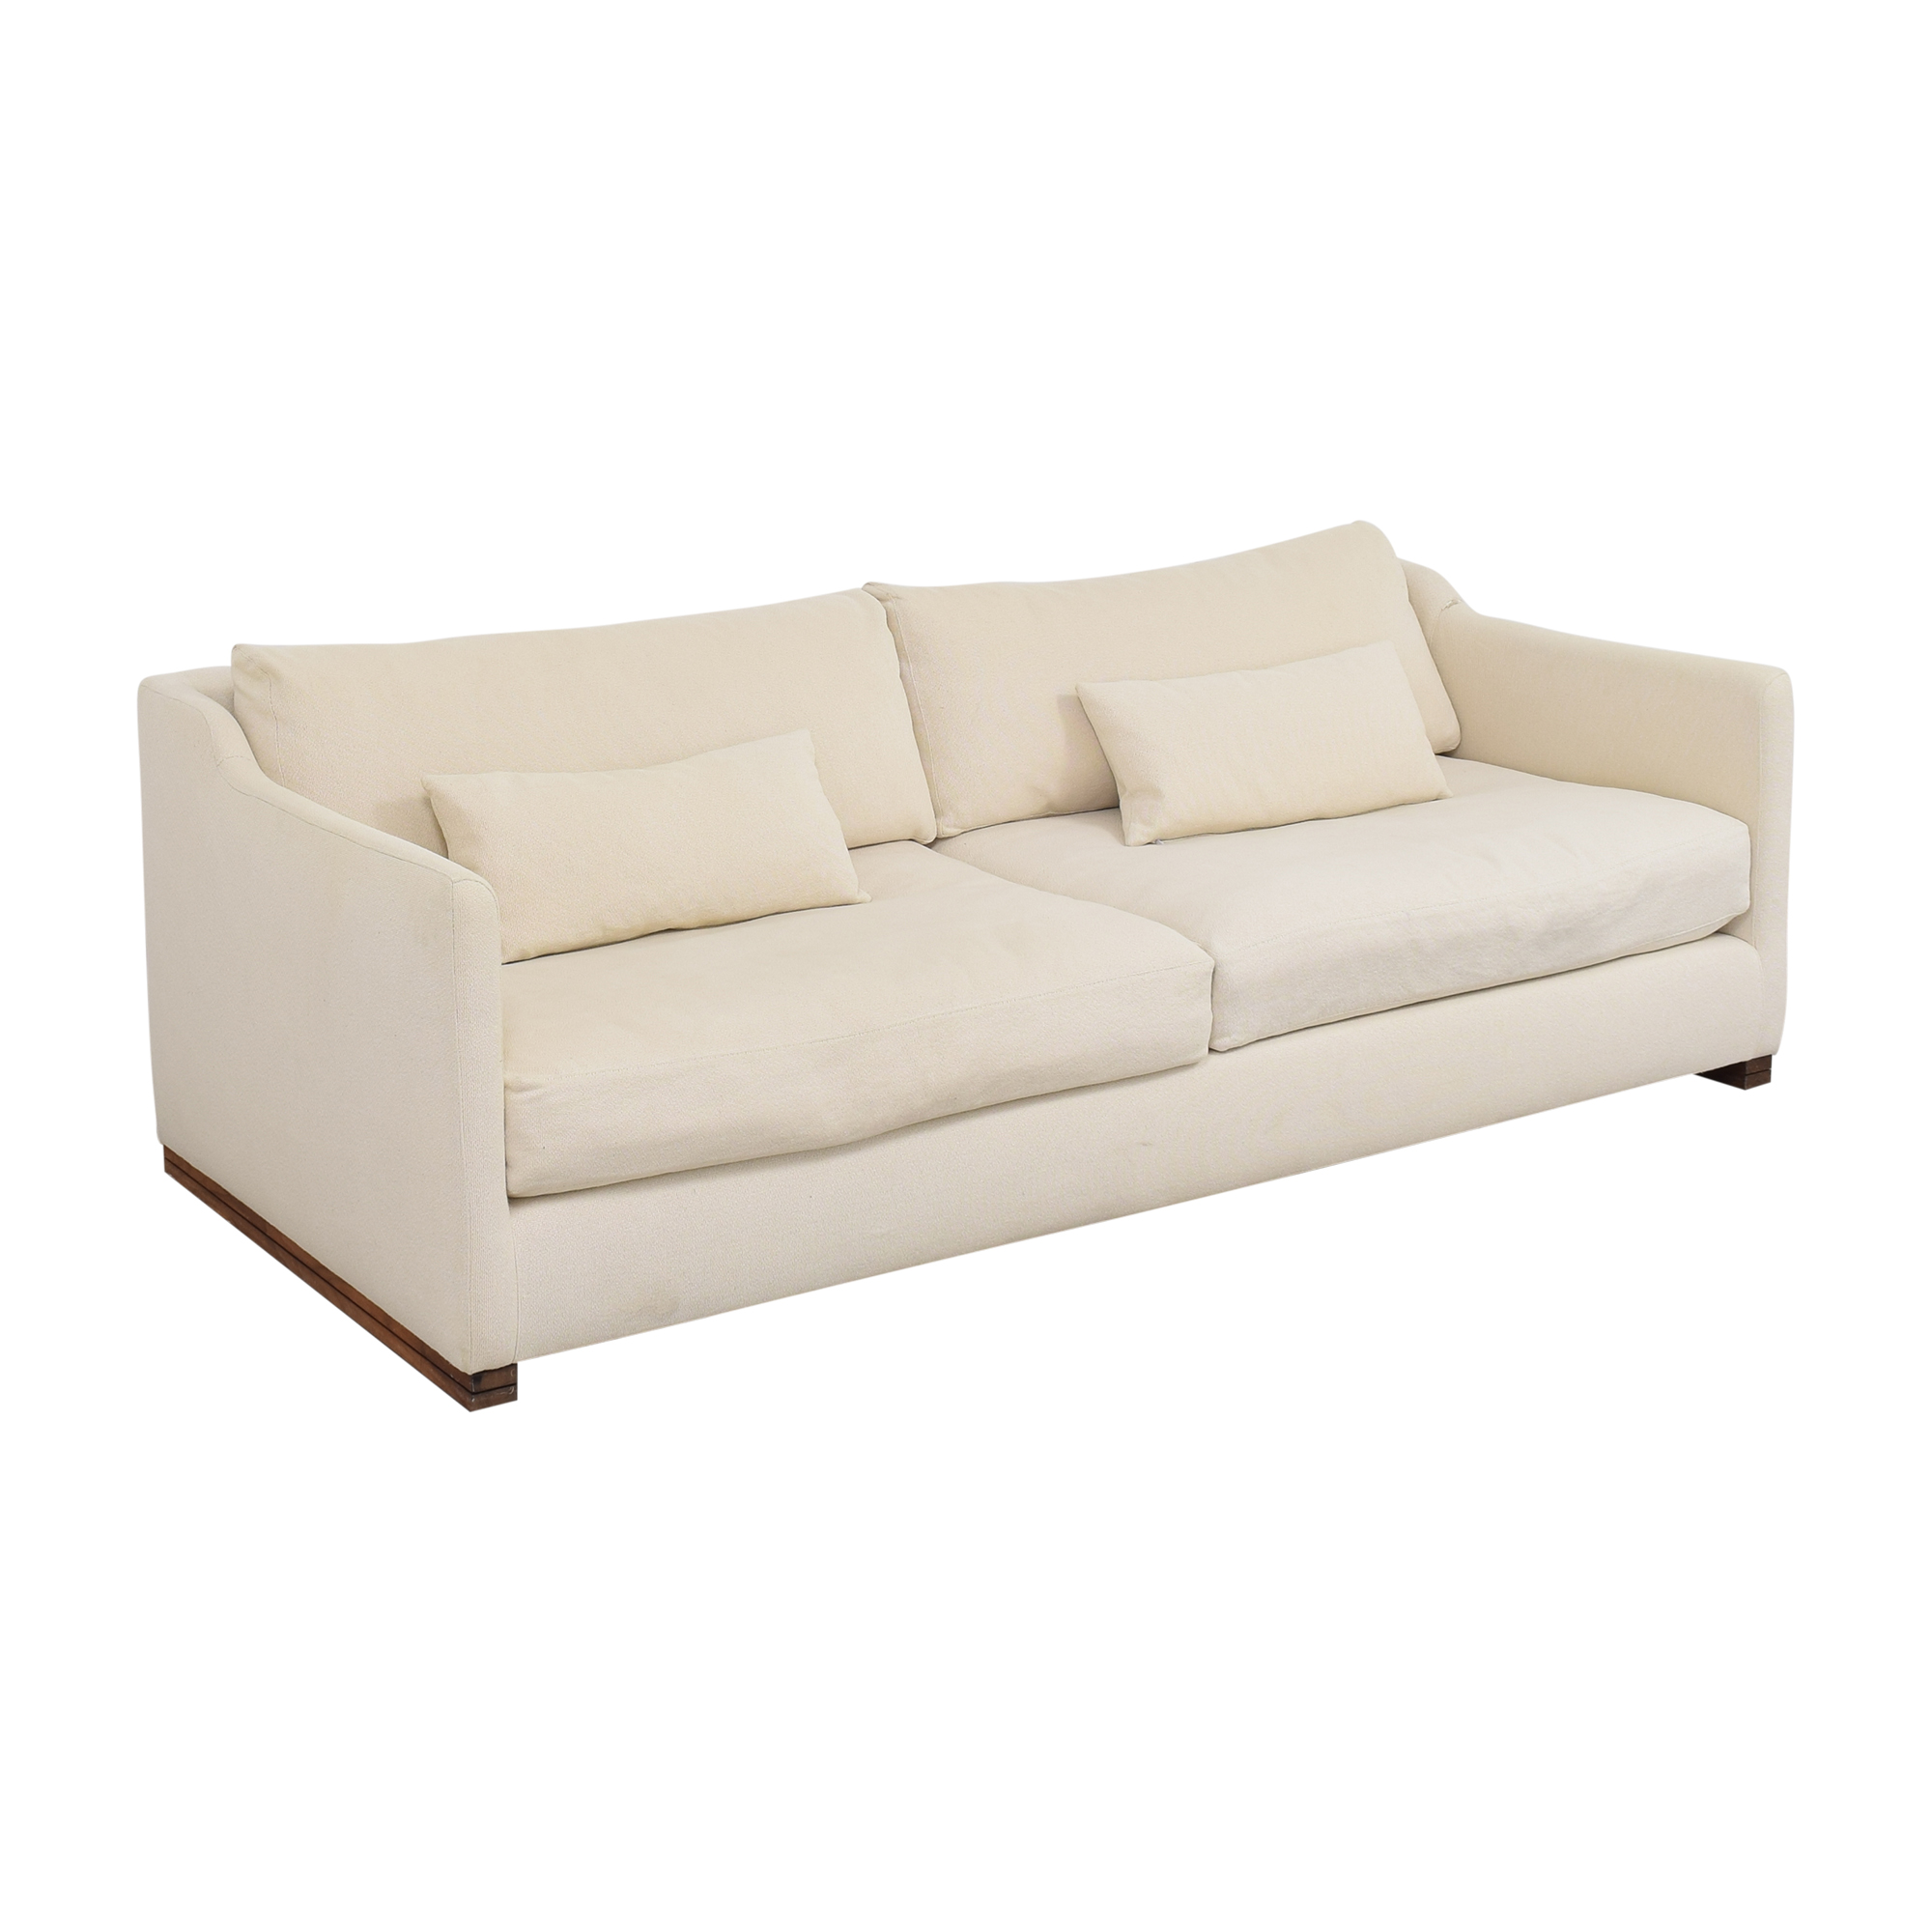 Cisco Brothers Cisco Brothers Dexter Wide Sofa ma